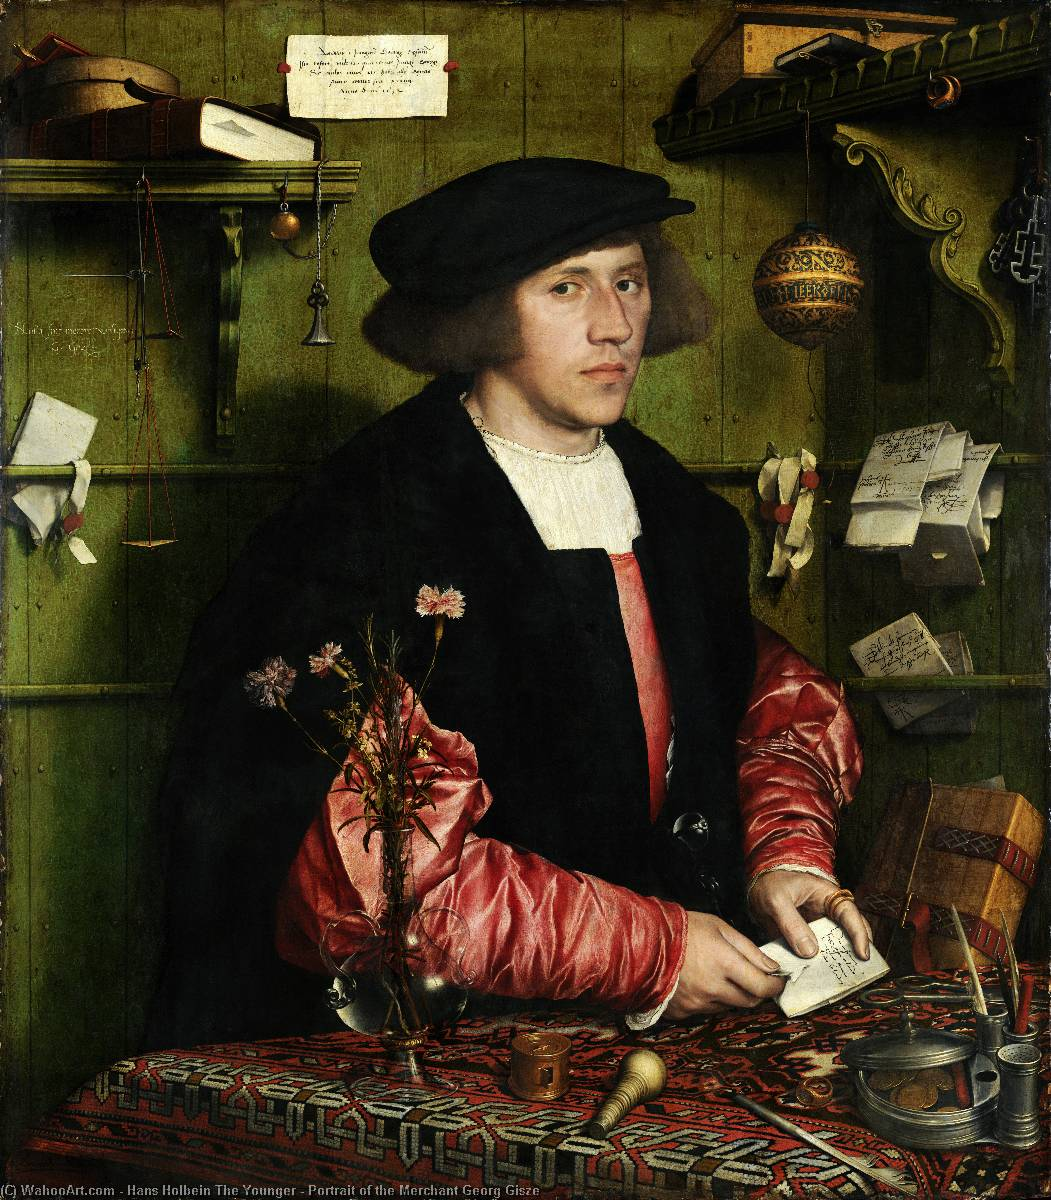 famous painting Portrait of the Merchant Georg Gisze of Hans Holbein The Younger